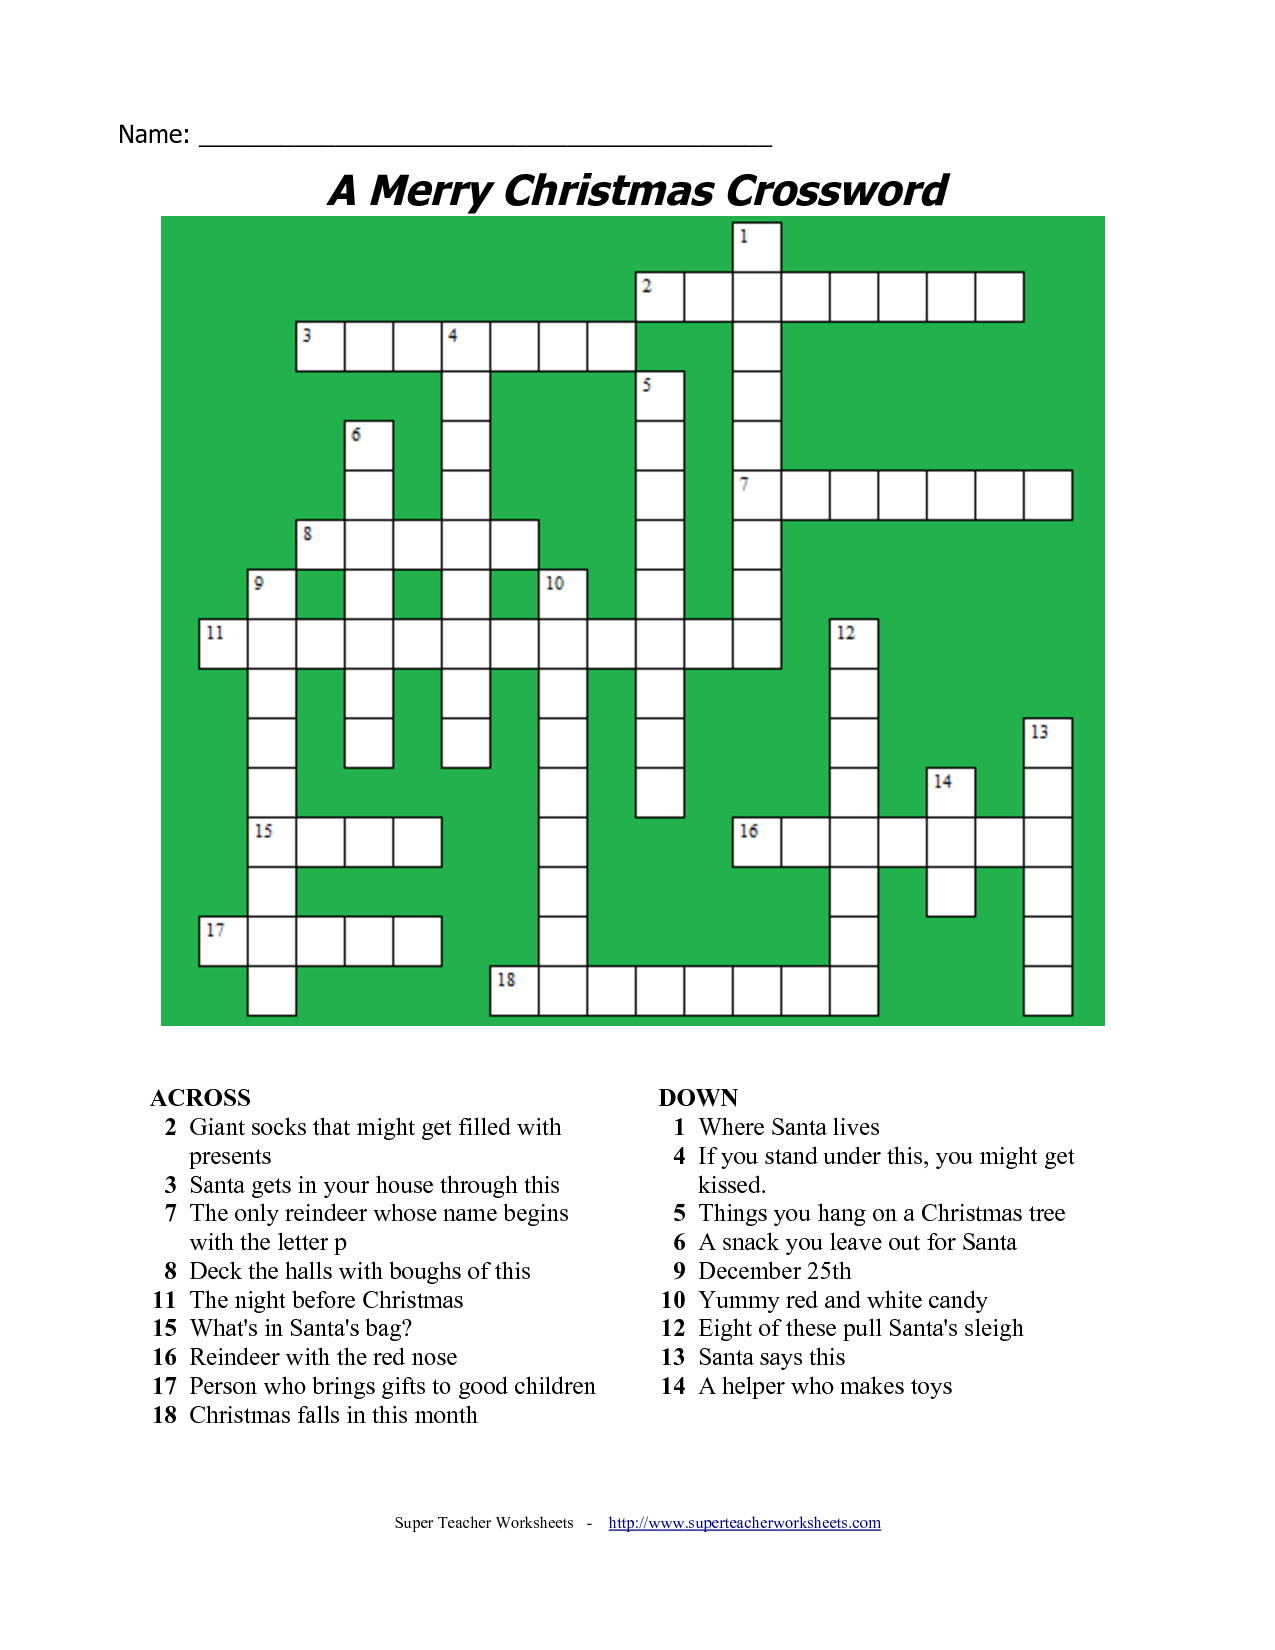 20 Fun Printable Christmas Crossword Puzzles | Kittybabylove - Free Printable Christmas Crossword Puzzles For Adults